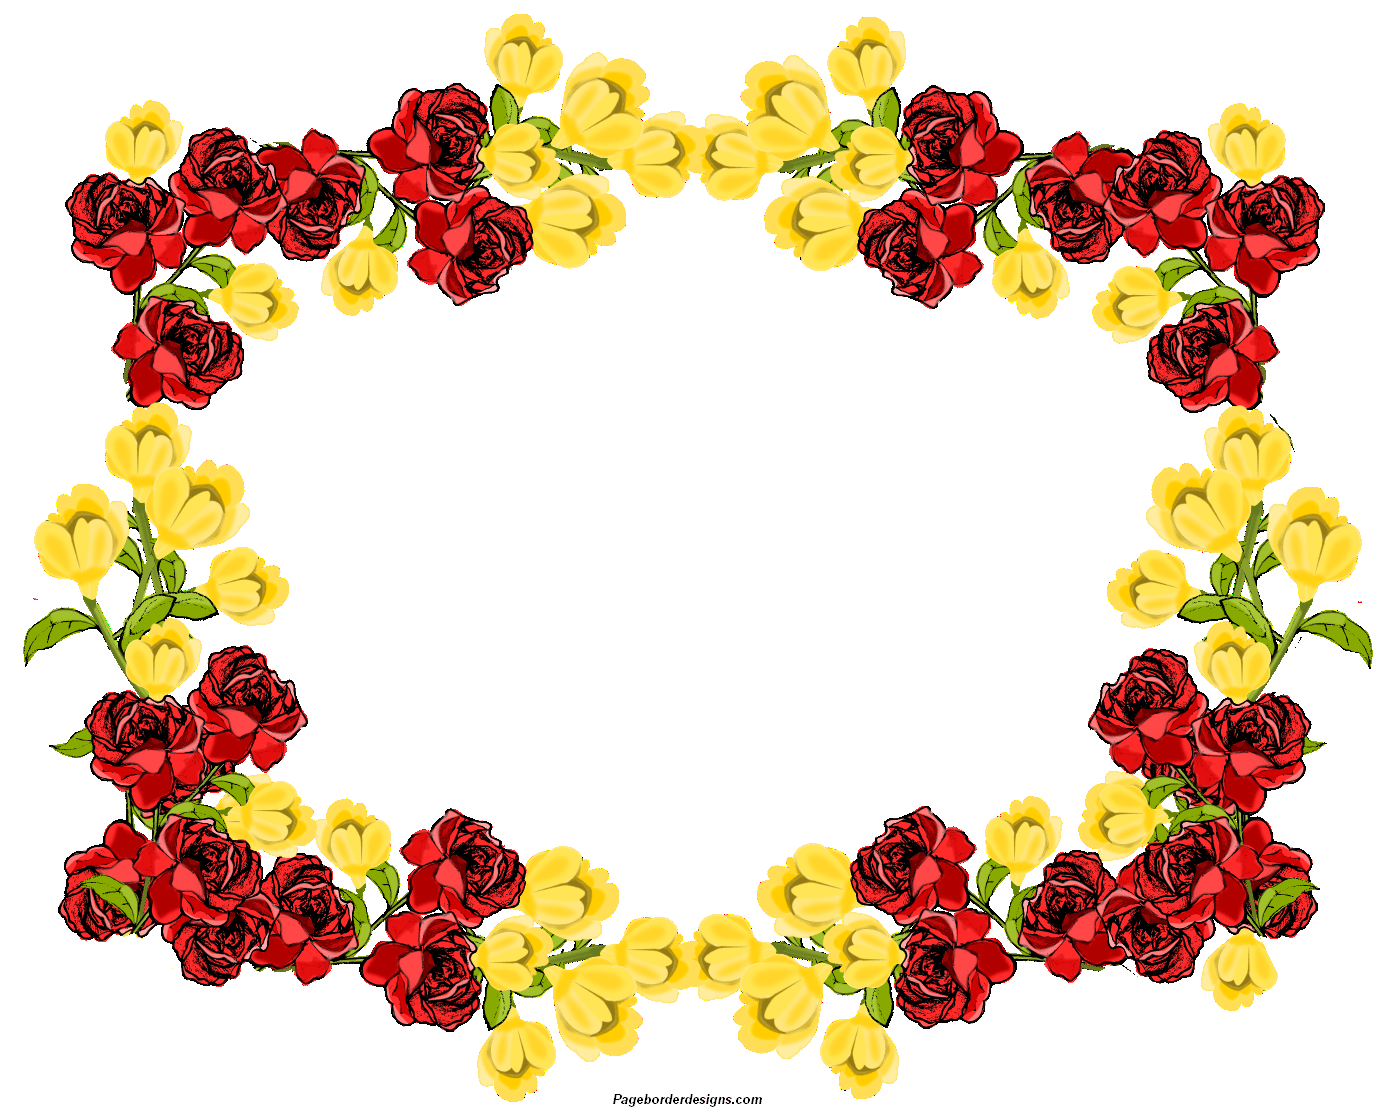 Beautiful Red and yellow Clip Art Flowers Frame Border